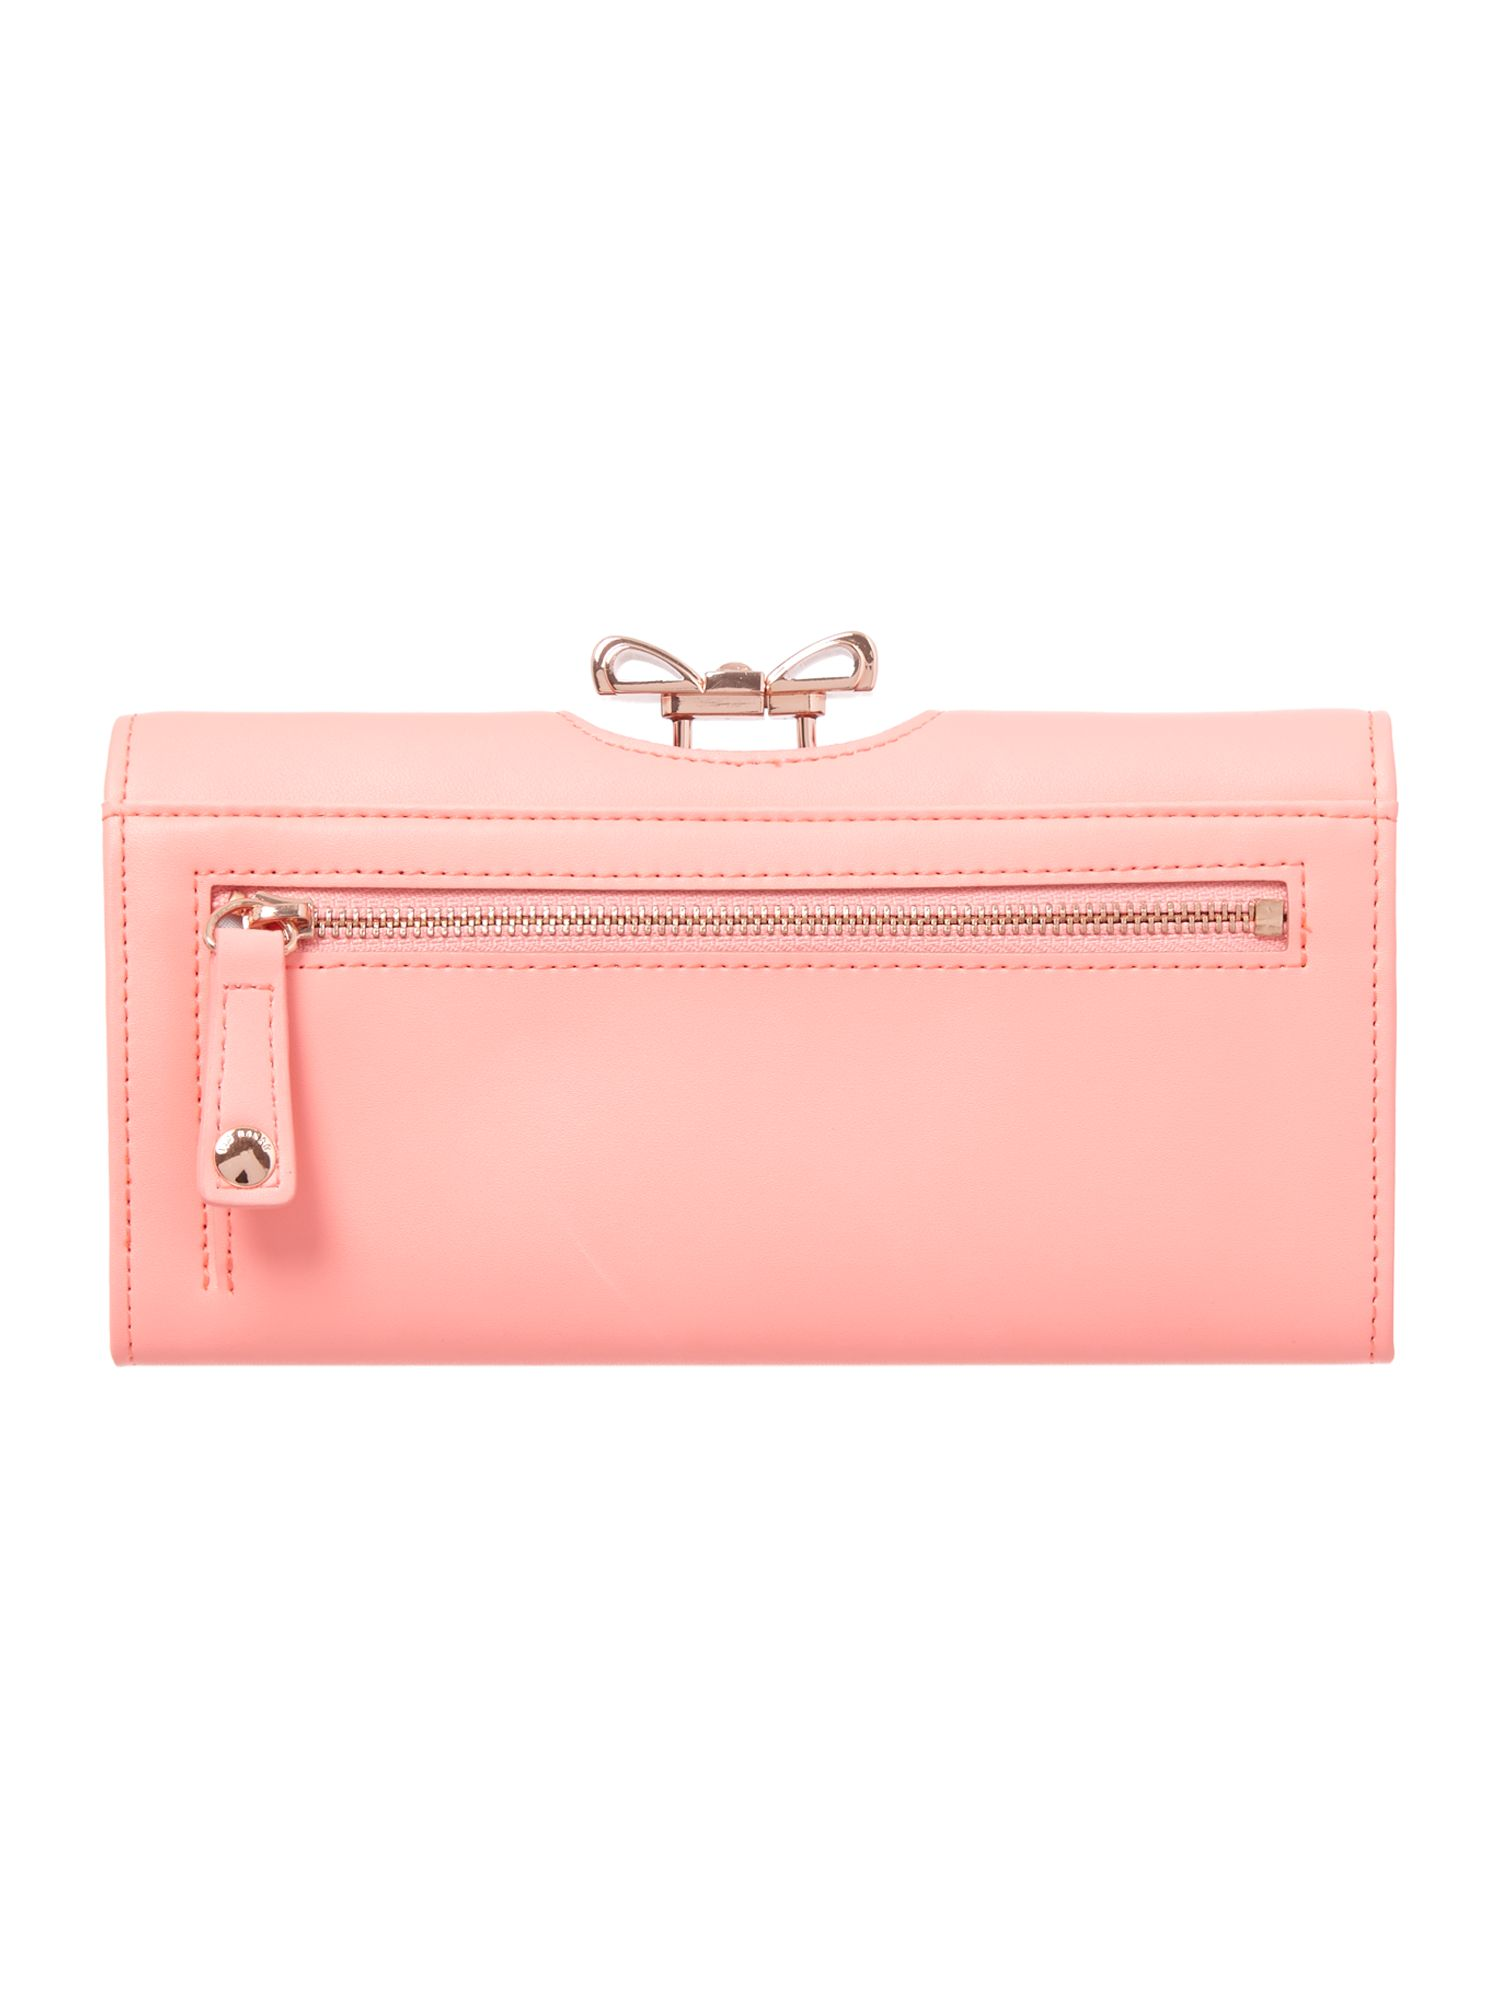 Coral crystal bow leather matinee purse